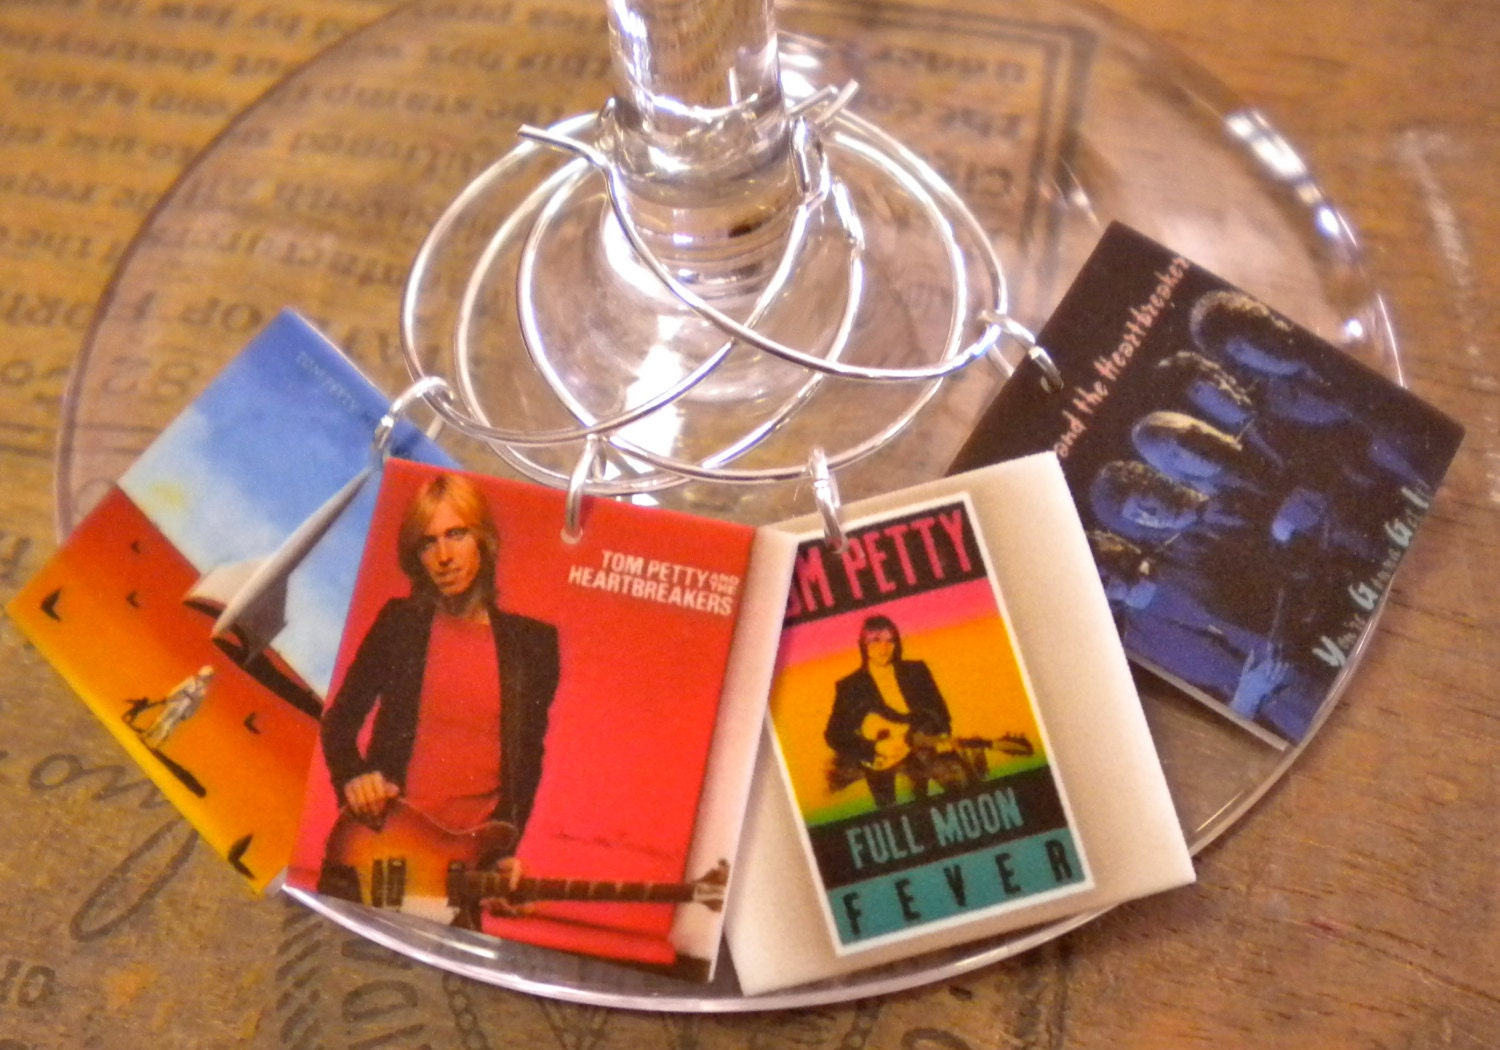 Tom Petty & Heartbreakers Album Cover Wine Charms for the   Etsy